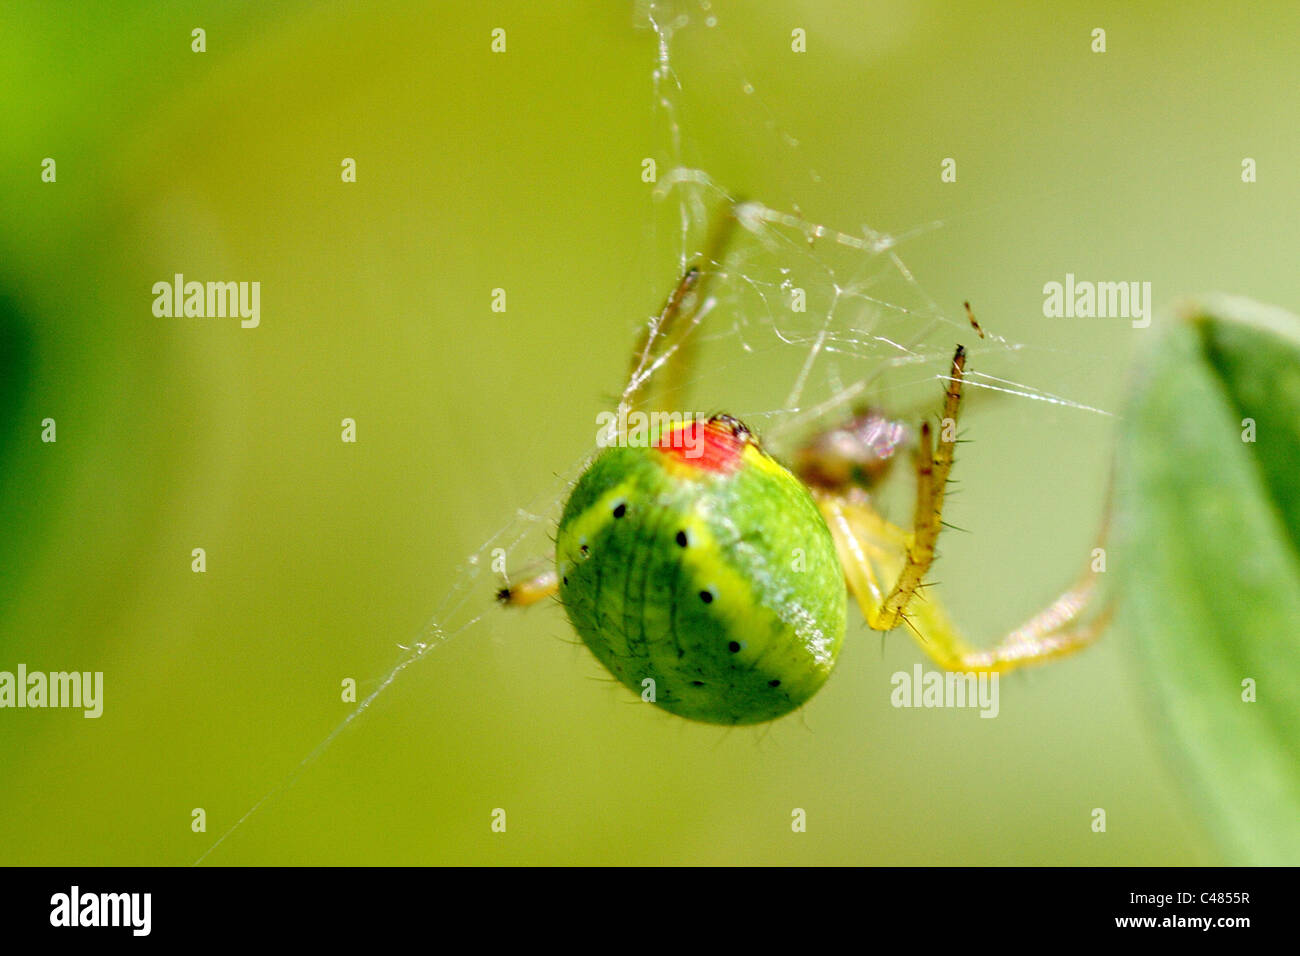 Cucumber Spider, Araniella Cucurbitina with red spot on back - Stock Image